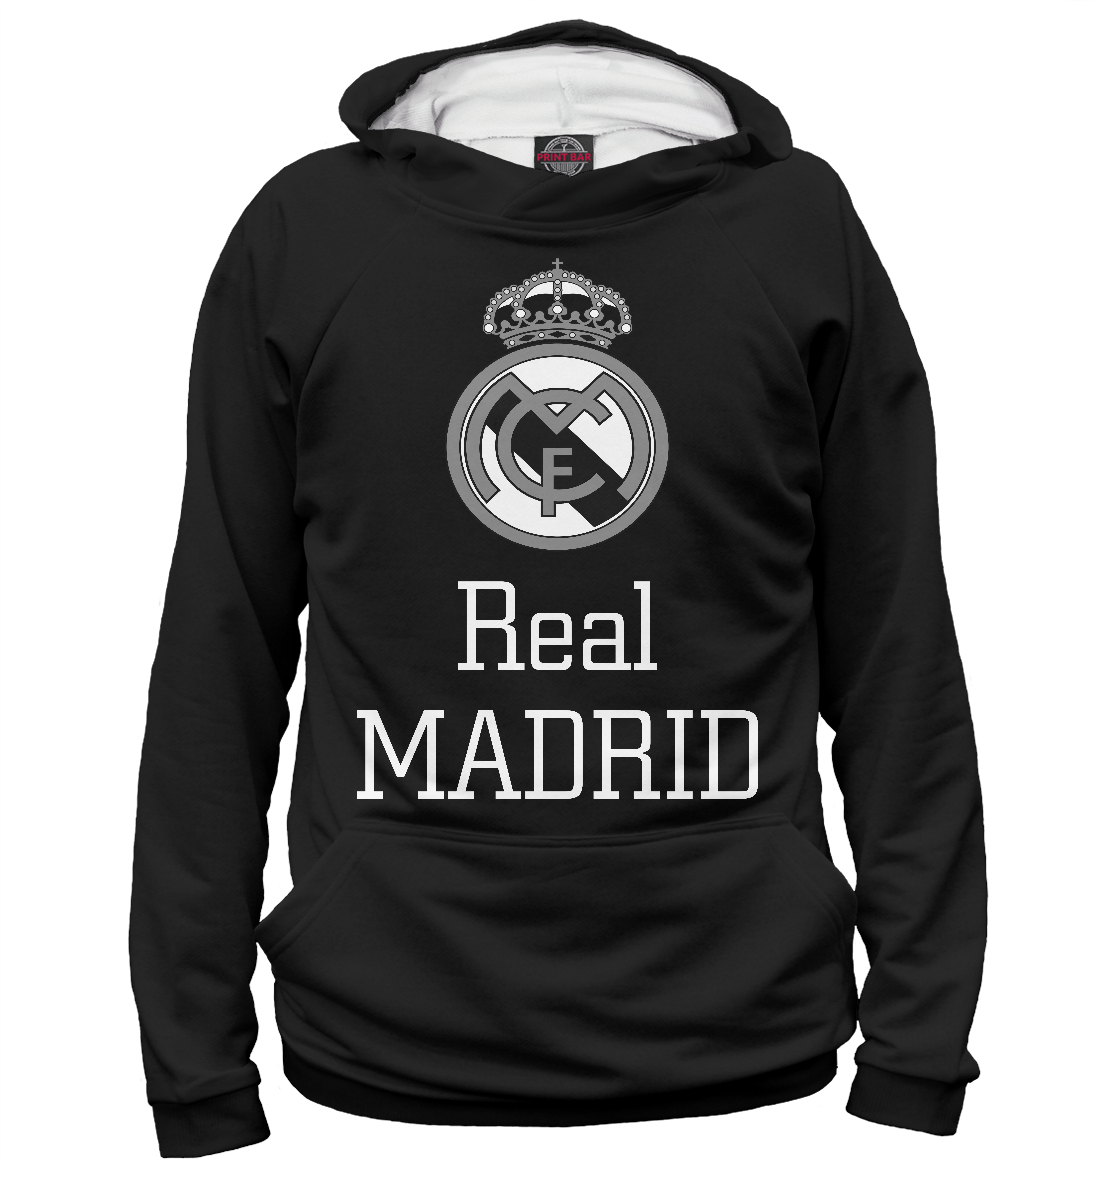 Купить Real Madrid, Printbar, Худи, REA-513887-hud-2